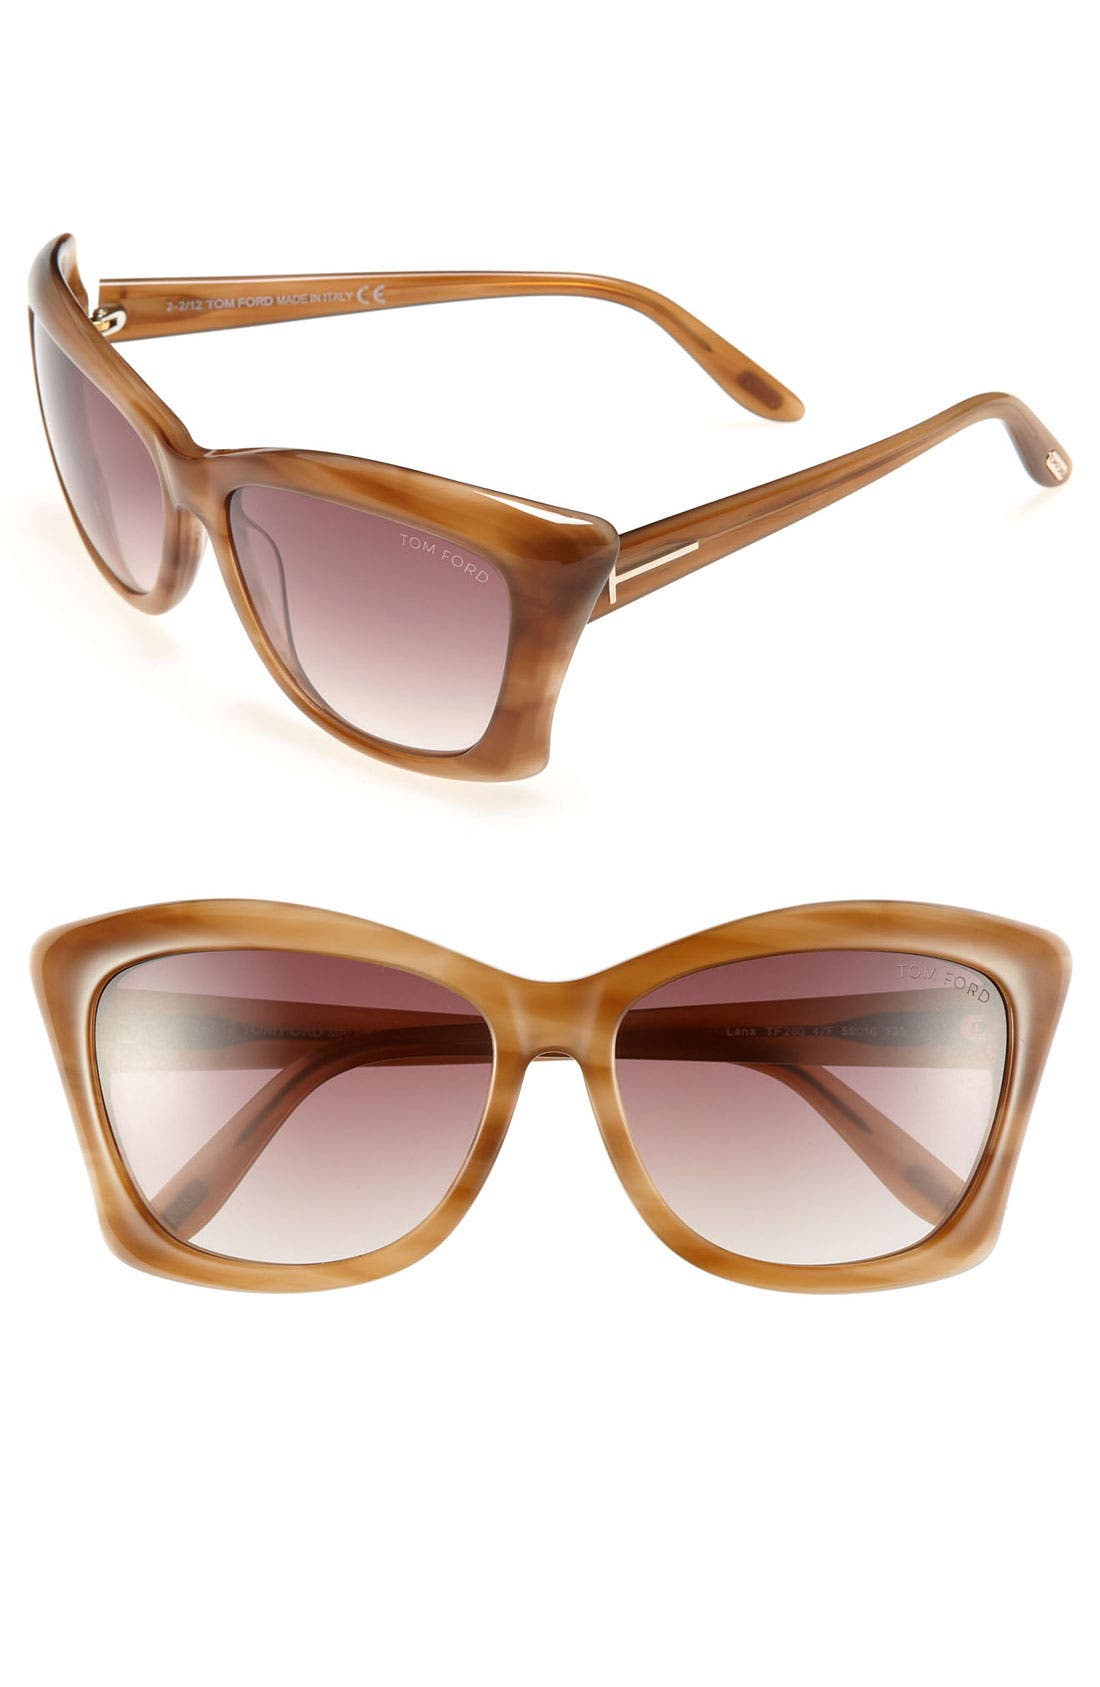 Alternate Image 1 Selected - Tom Ford 'Lana' 59mm Sunglasses